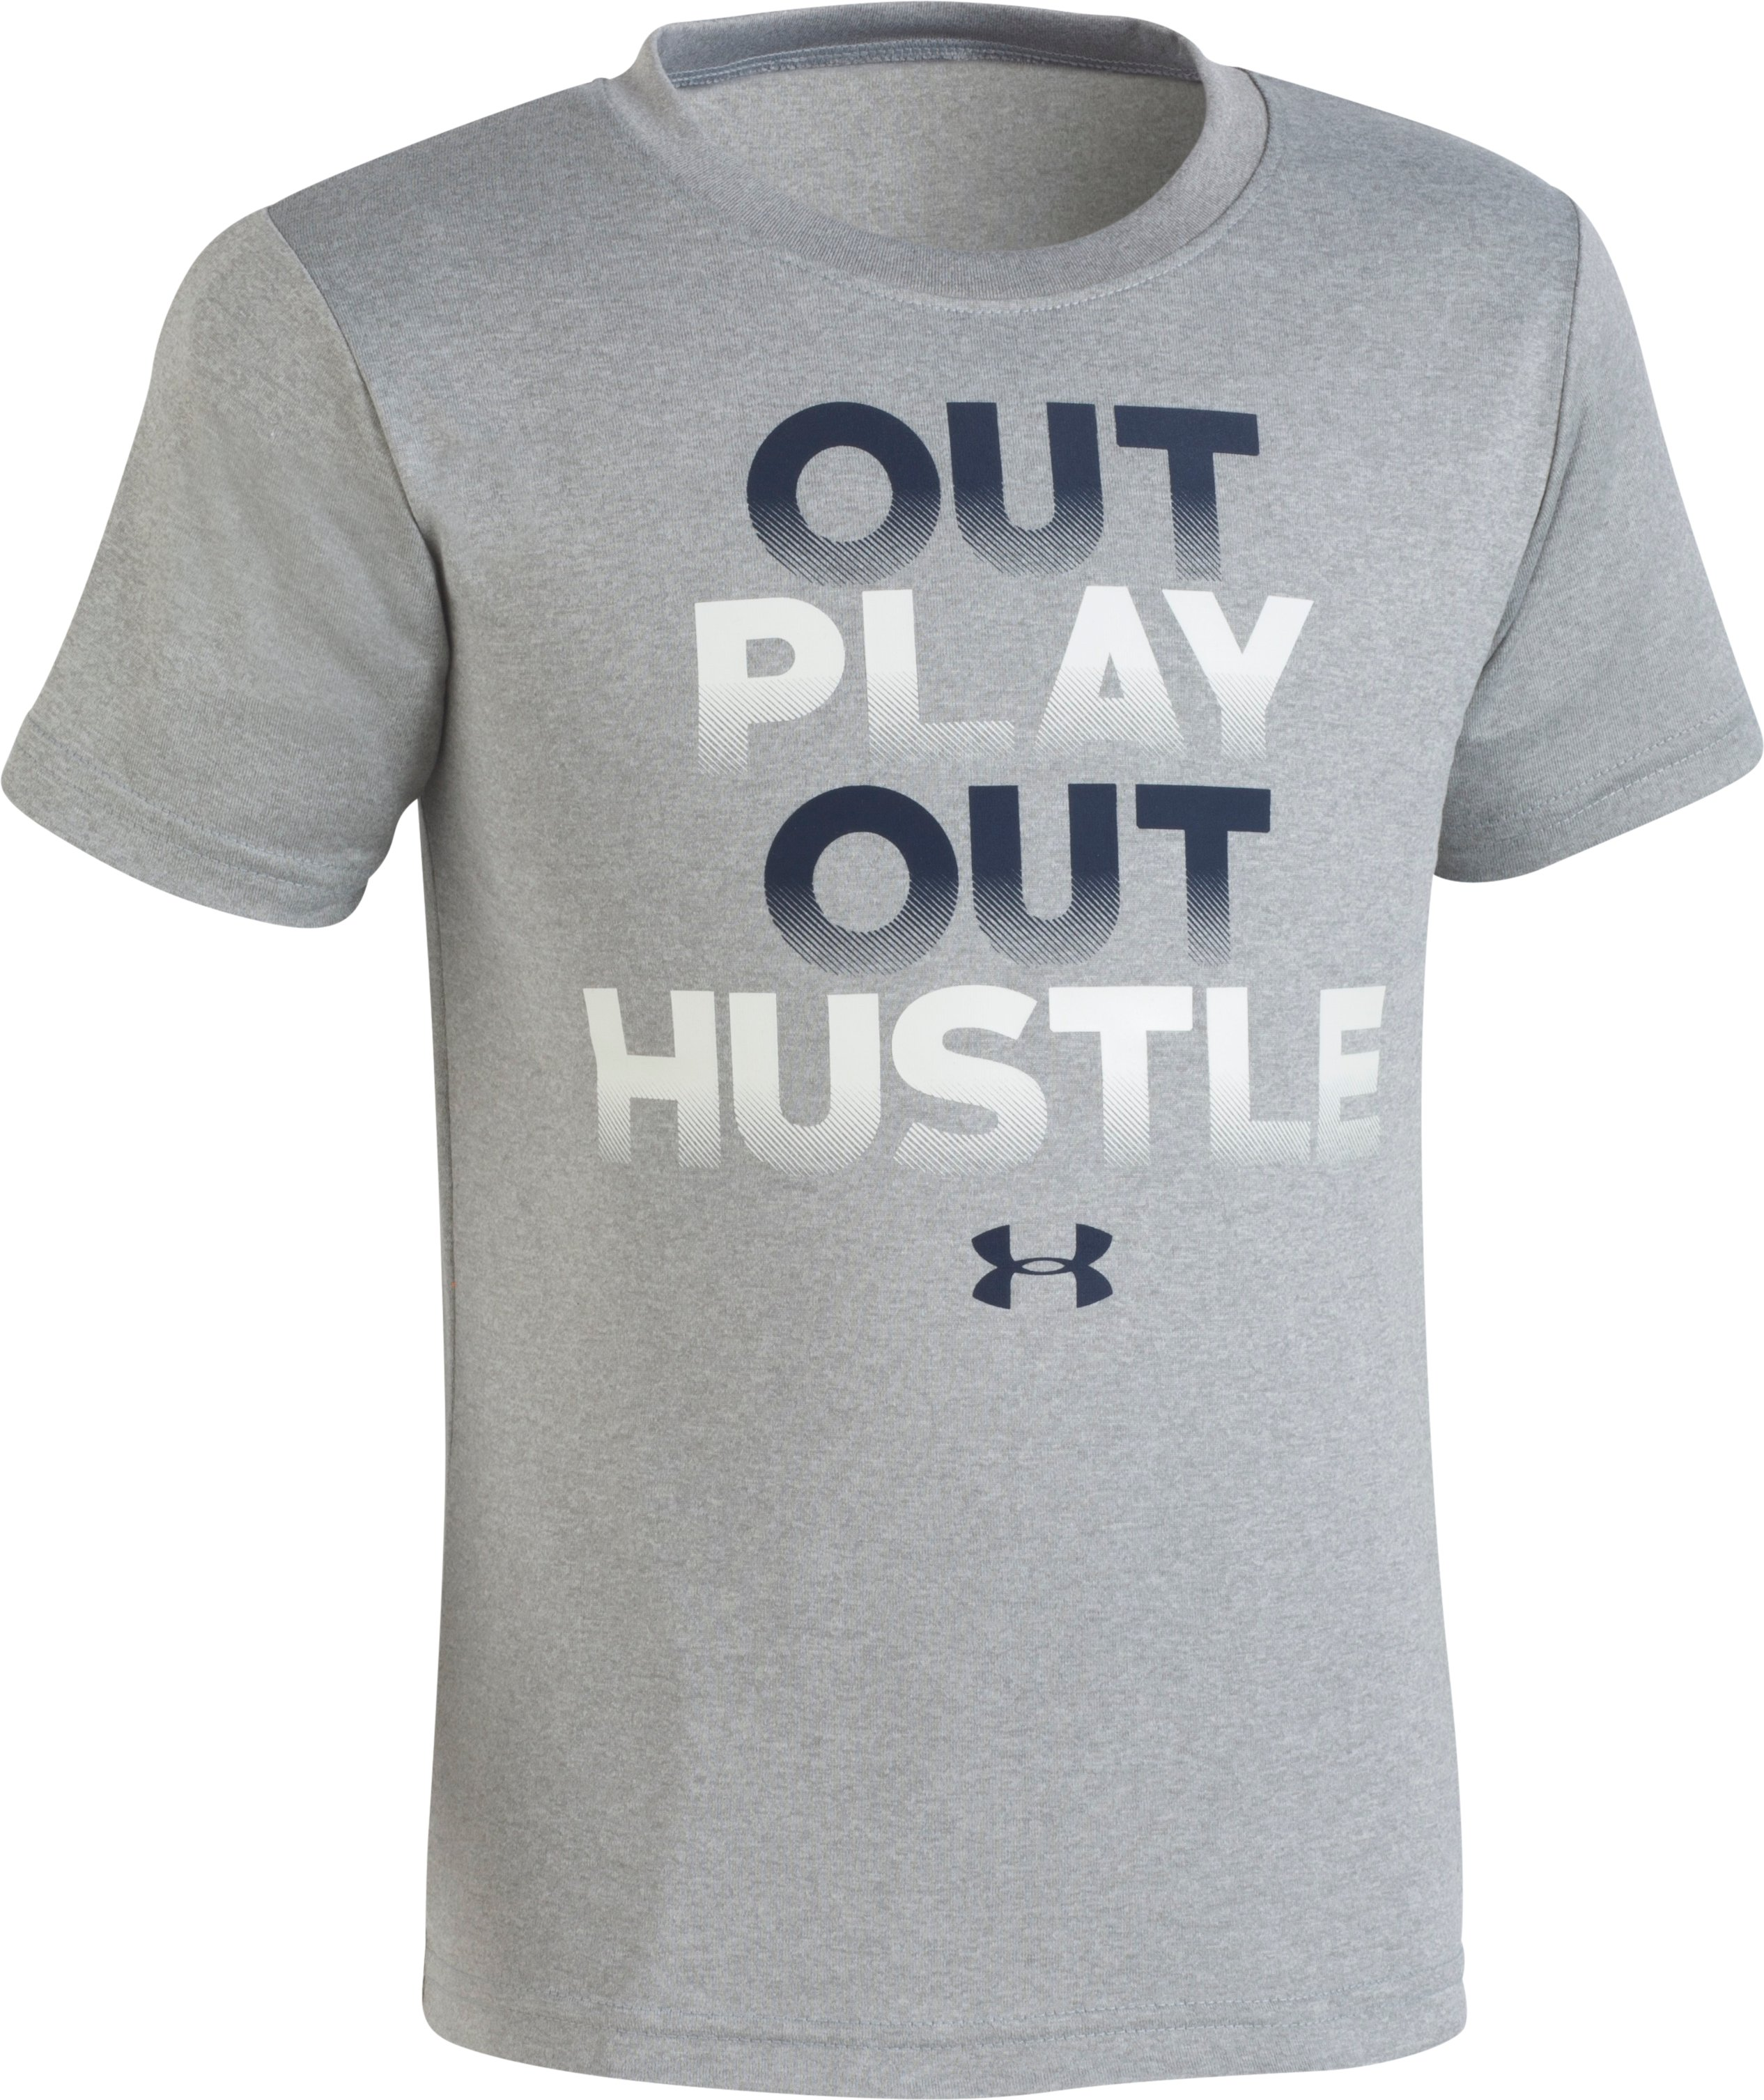 Boys' Pre-School UA Out Play Out Hustle Short Sleeve, STEEL MEDIUM HEATHER